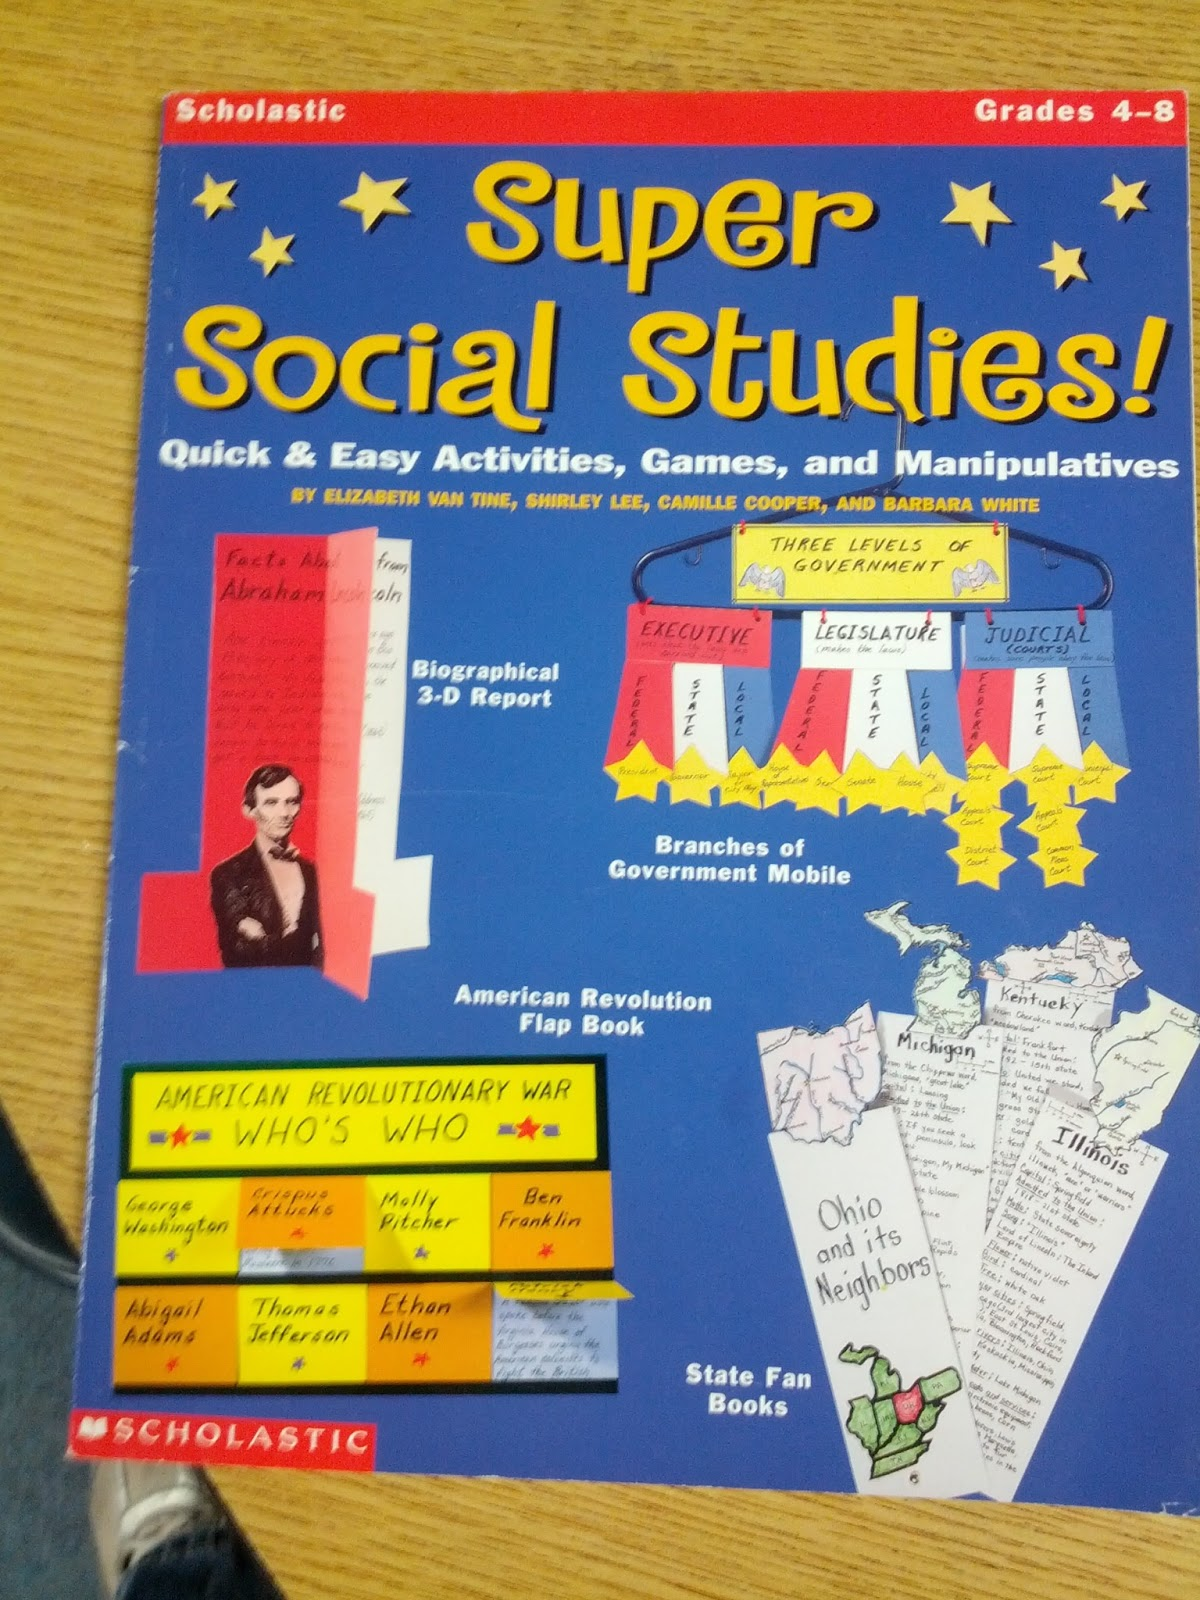 social studies and history Although social studies curricula vary in their breadth and depth, the social studies standards reflect a focus on government, history, geography, and economics as the pillars of the content, with other disciplines within the social sciences deemed important, but not essential key ideas in the social studies standards: understand - the word.